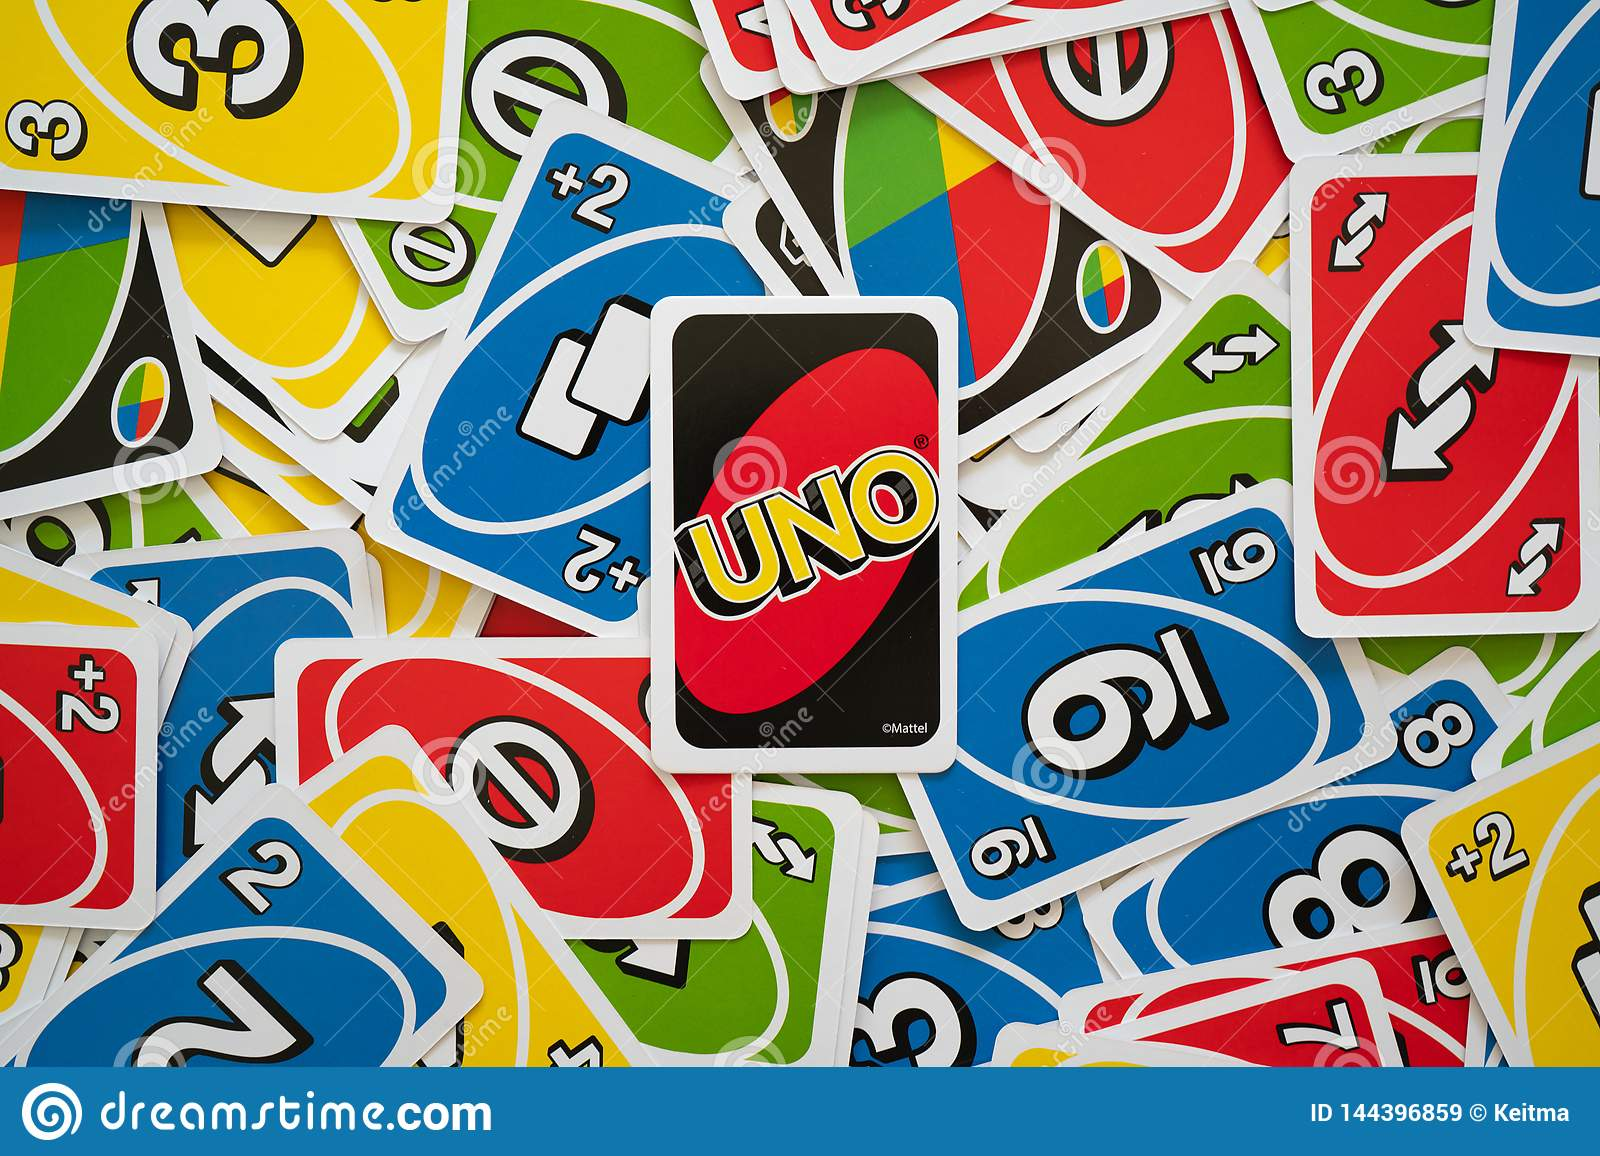 Uno Game Cards Scattered All Over The Frame And One Card